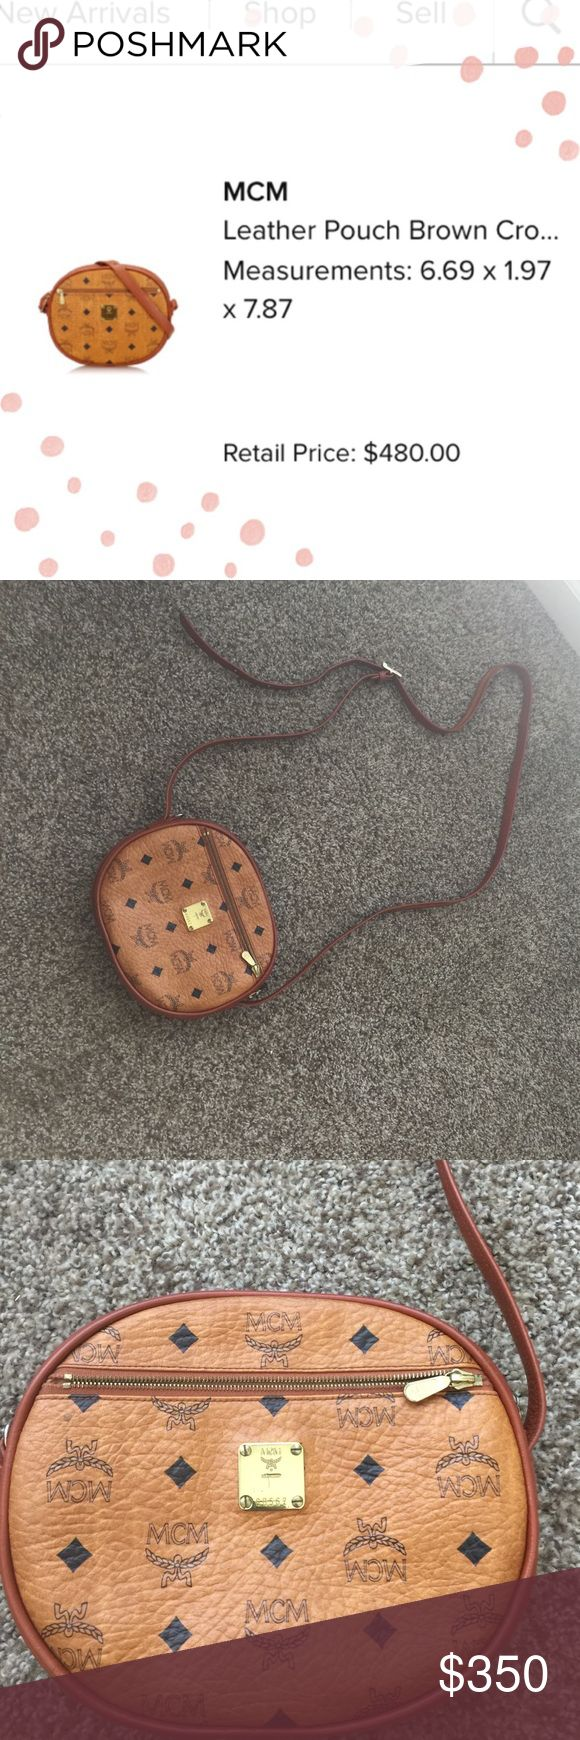 Authentic MCM oval crossbody in cognac Authentic Vintage MCM oval crossbody bag in cognac. So cute and goes with everything! This exact styles no longer selling online. Some pen marks on the inside of bag, but not noticeable when in use. Open to offers, no trades! MCM Bags Crossbody Bags